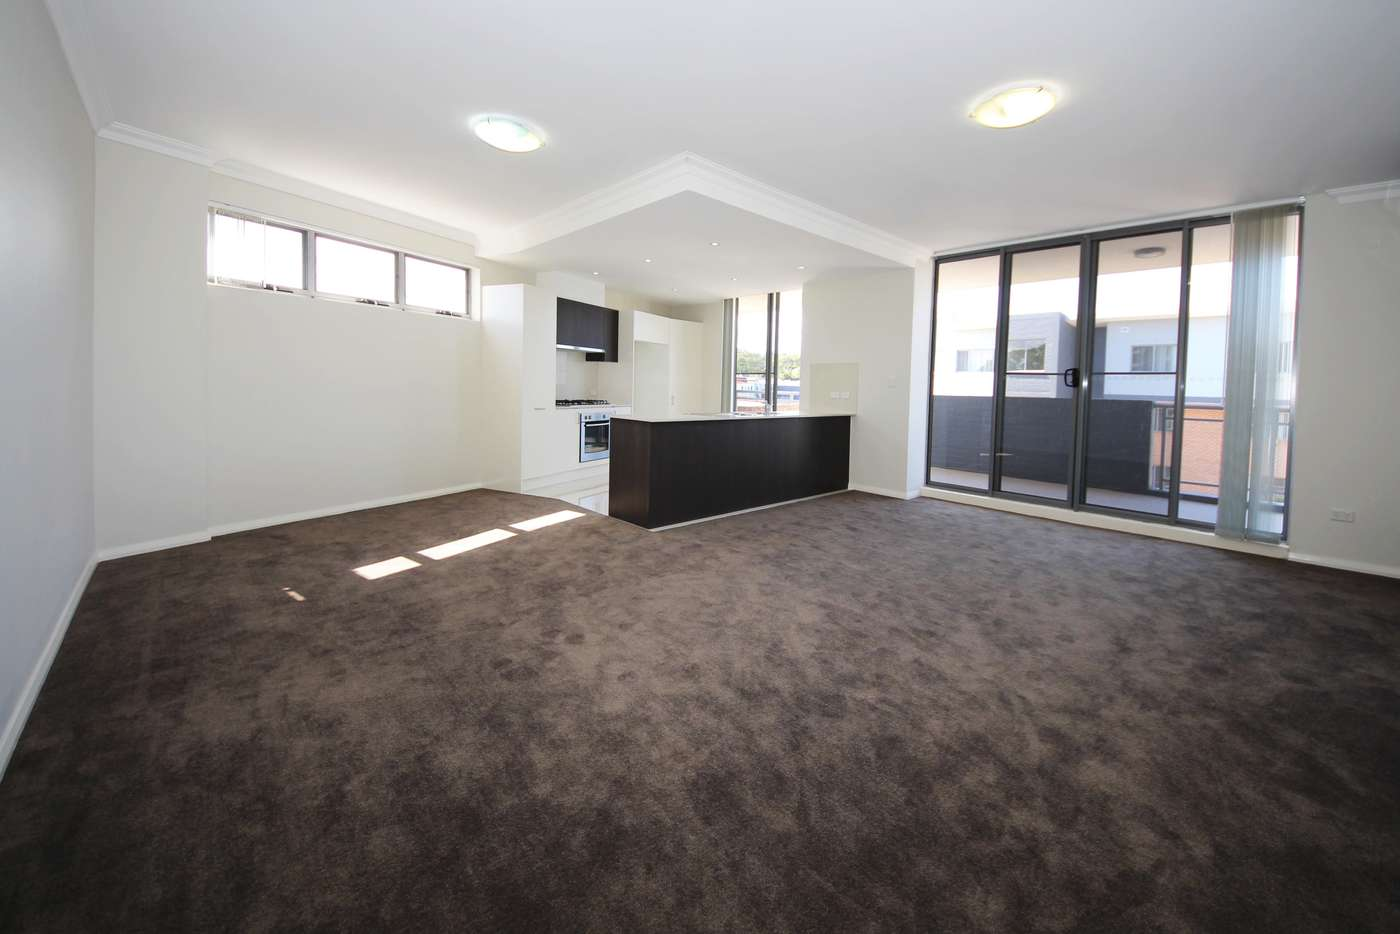 Main view of Homely unit listing, 26/34-36 Herbert St, West Ryde NSW 2114